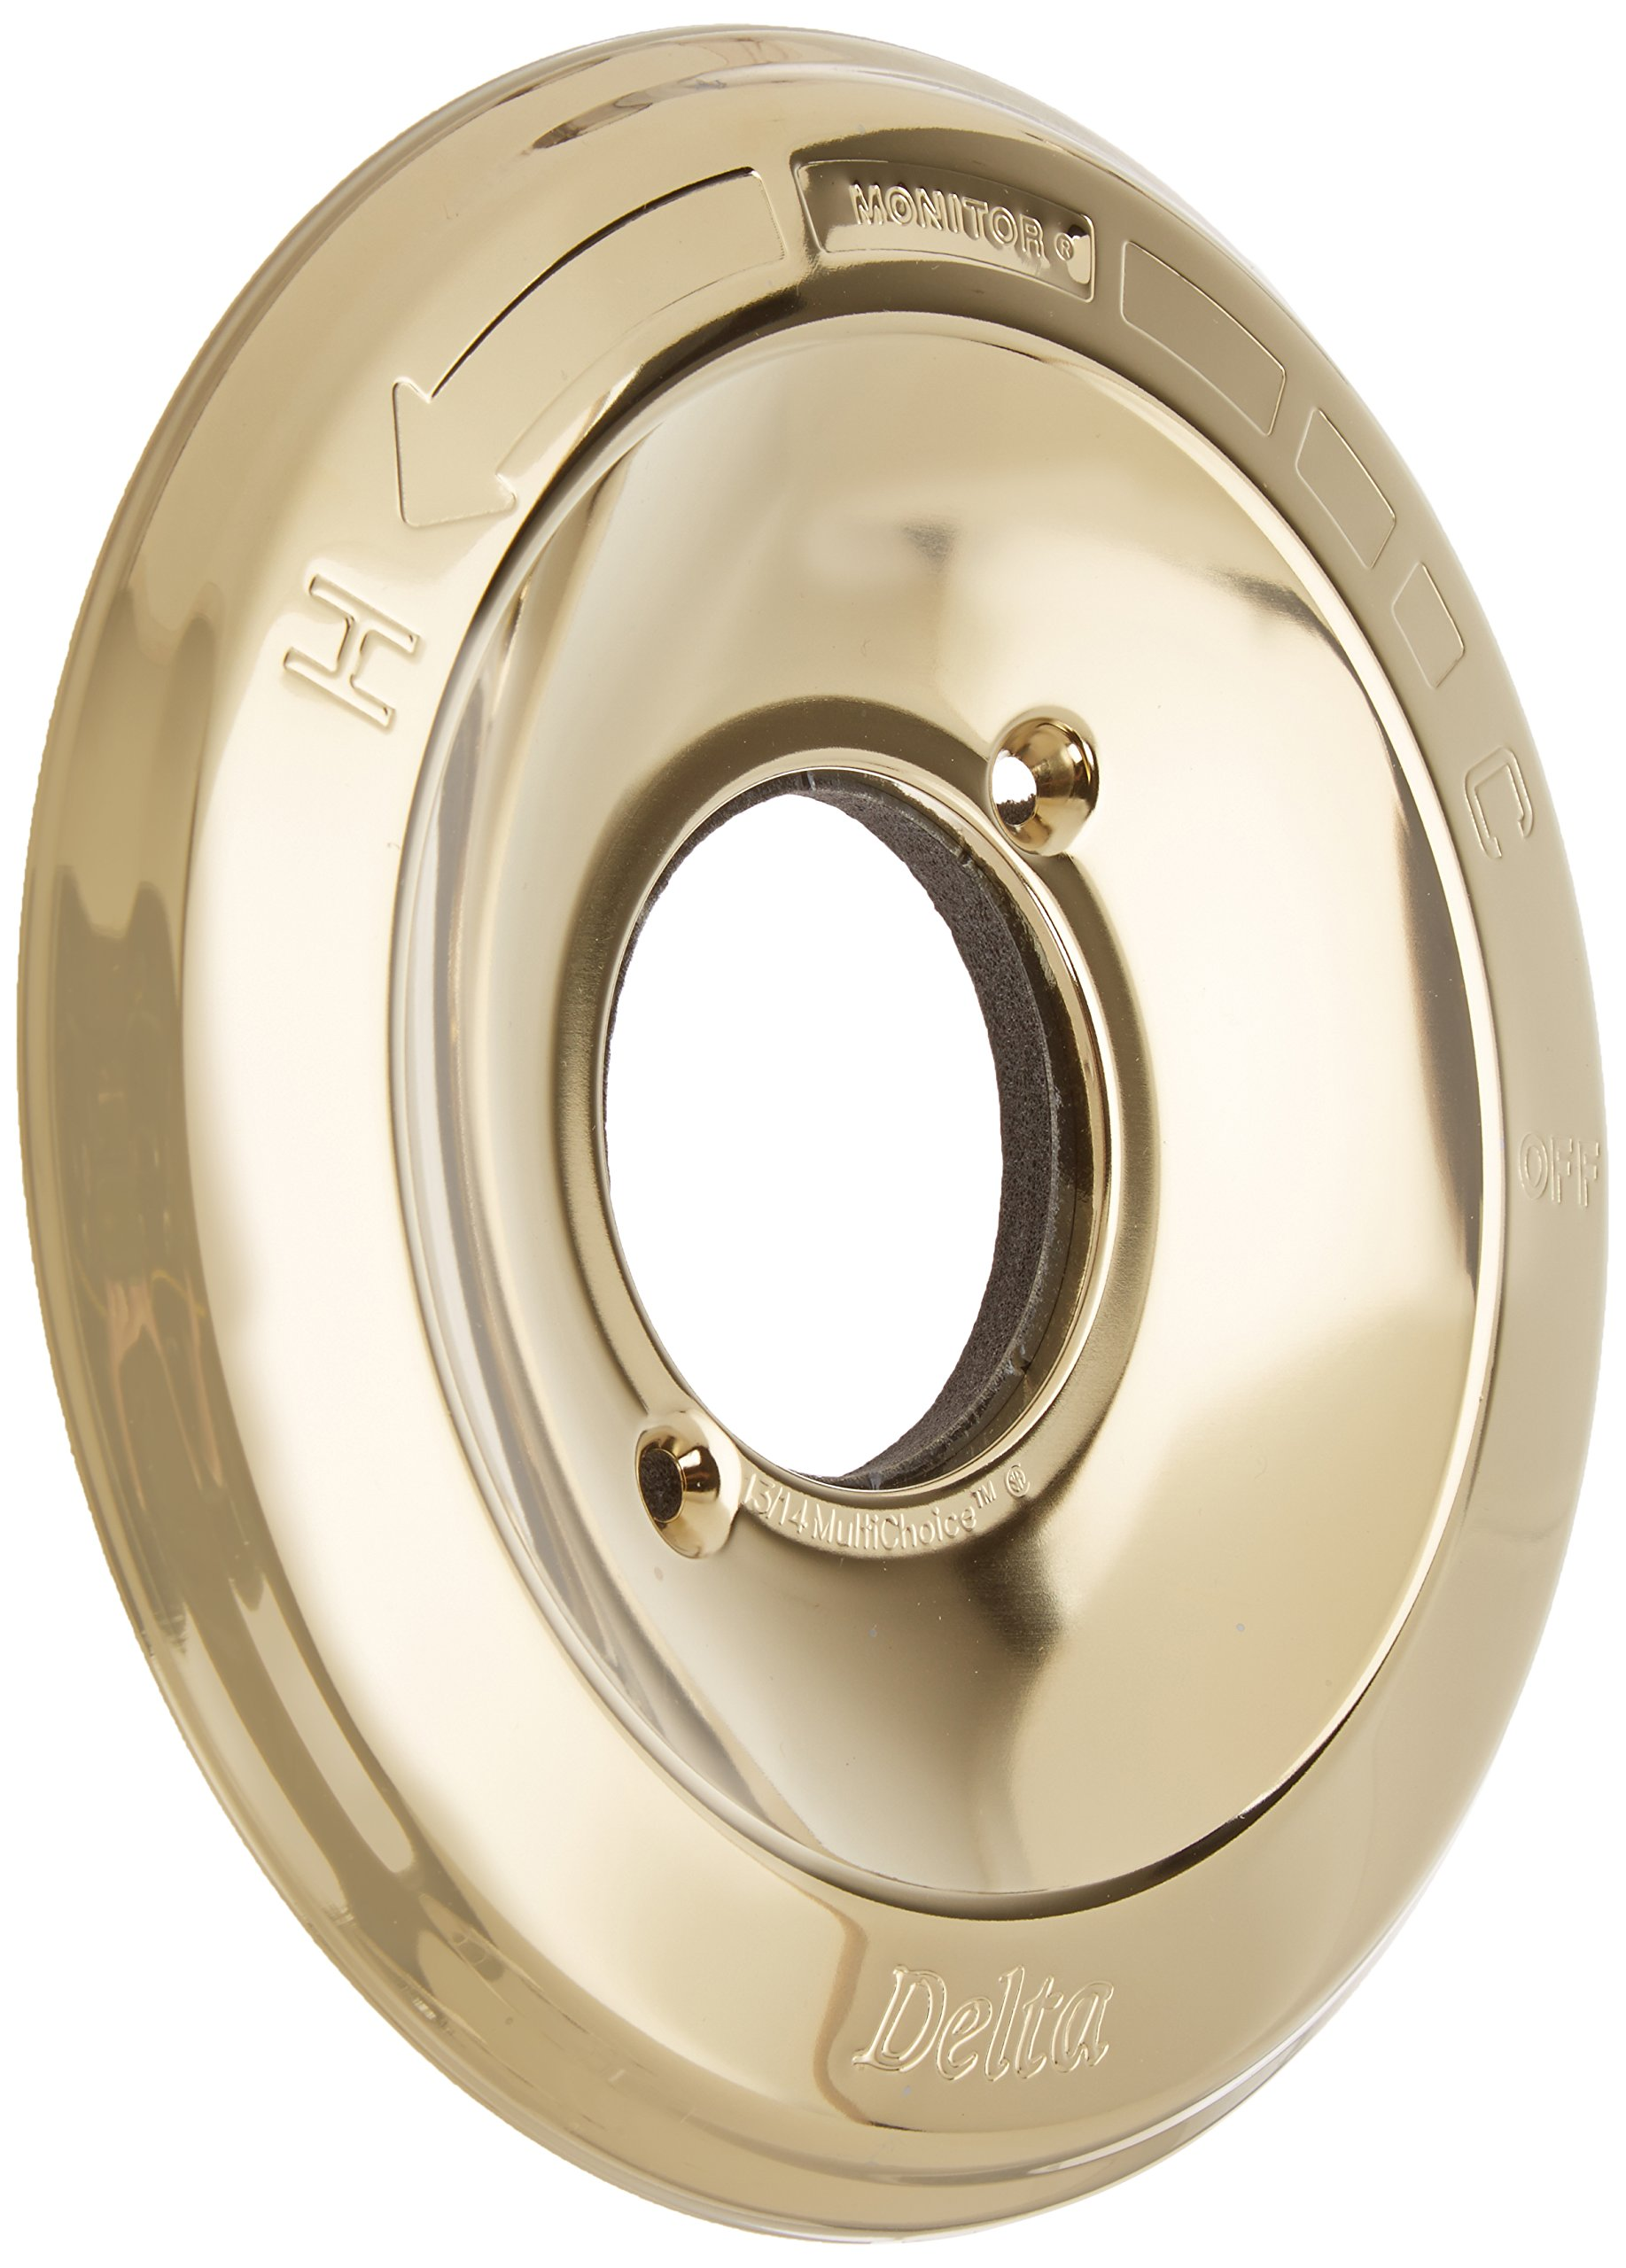 Delta Faucet RP19809PB Escutcheon for Delta 13 and 14 Series, Polished Brass by DELTA FAUCET (Image #1)